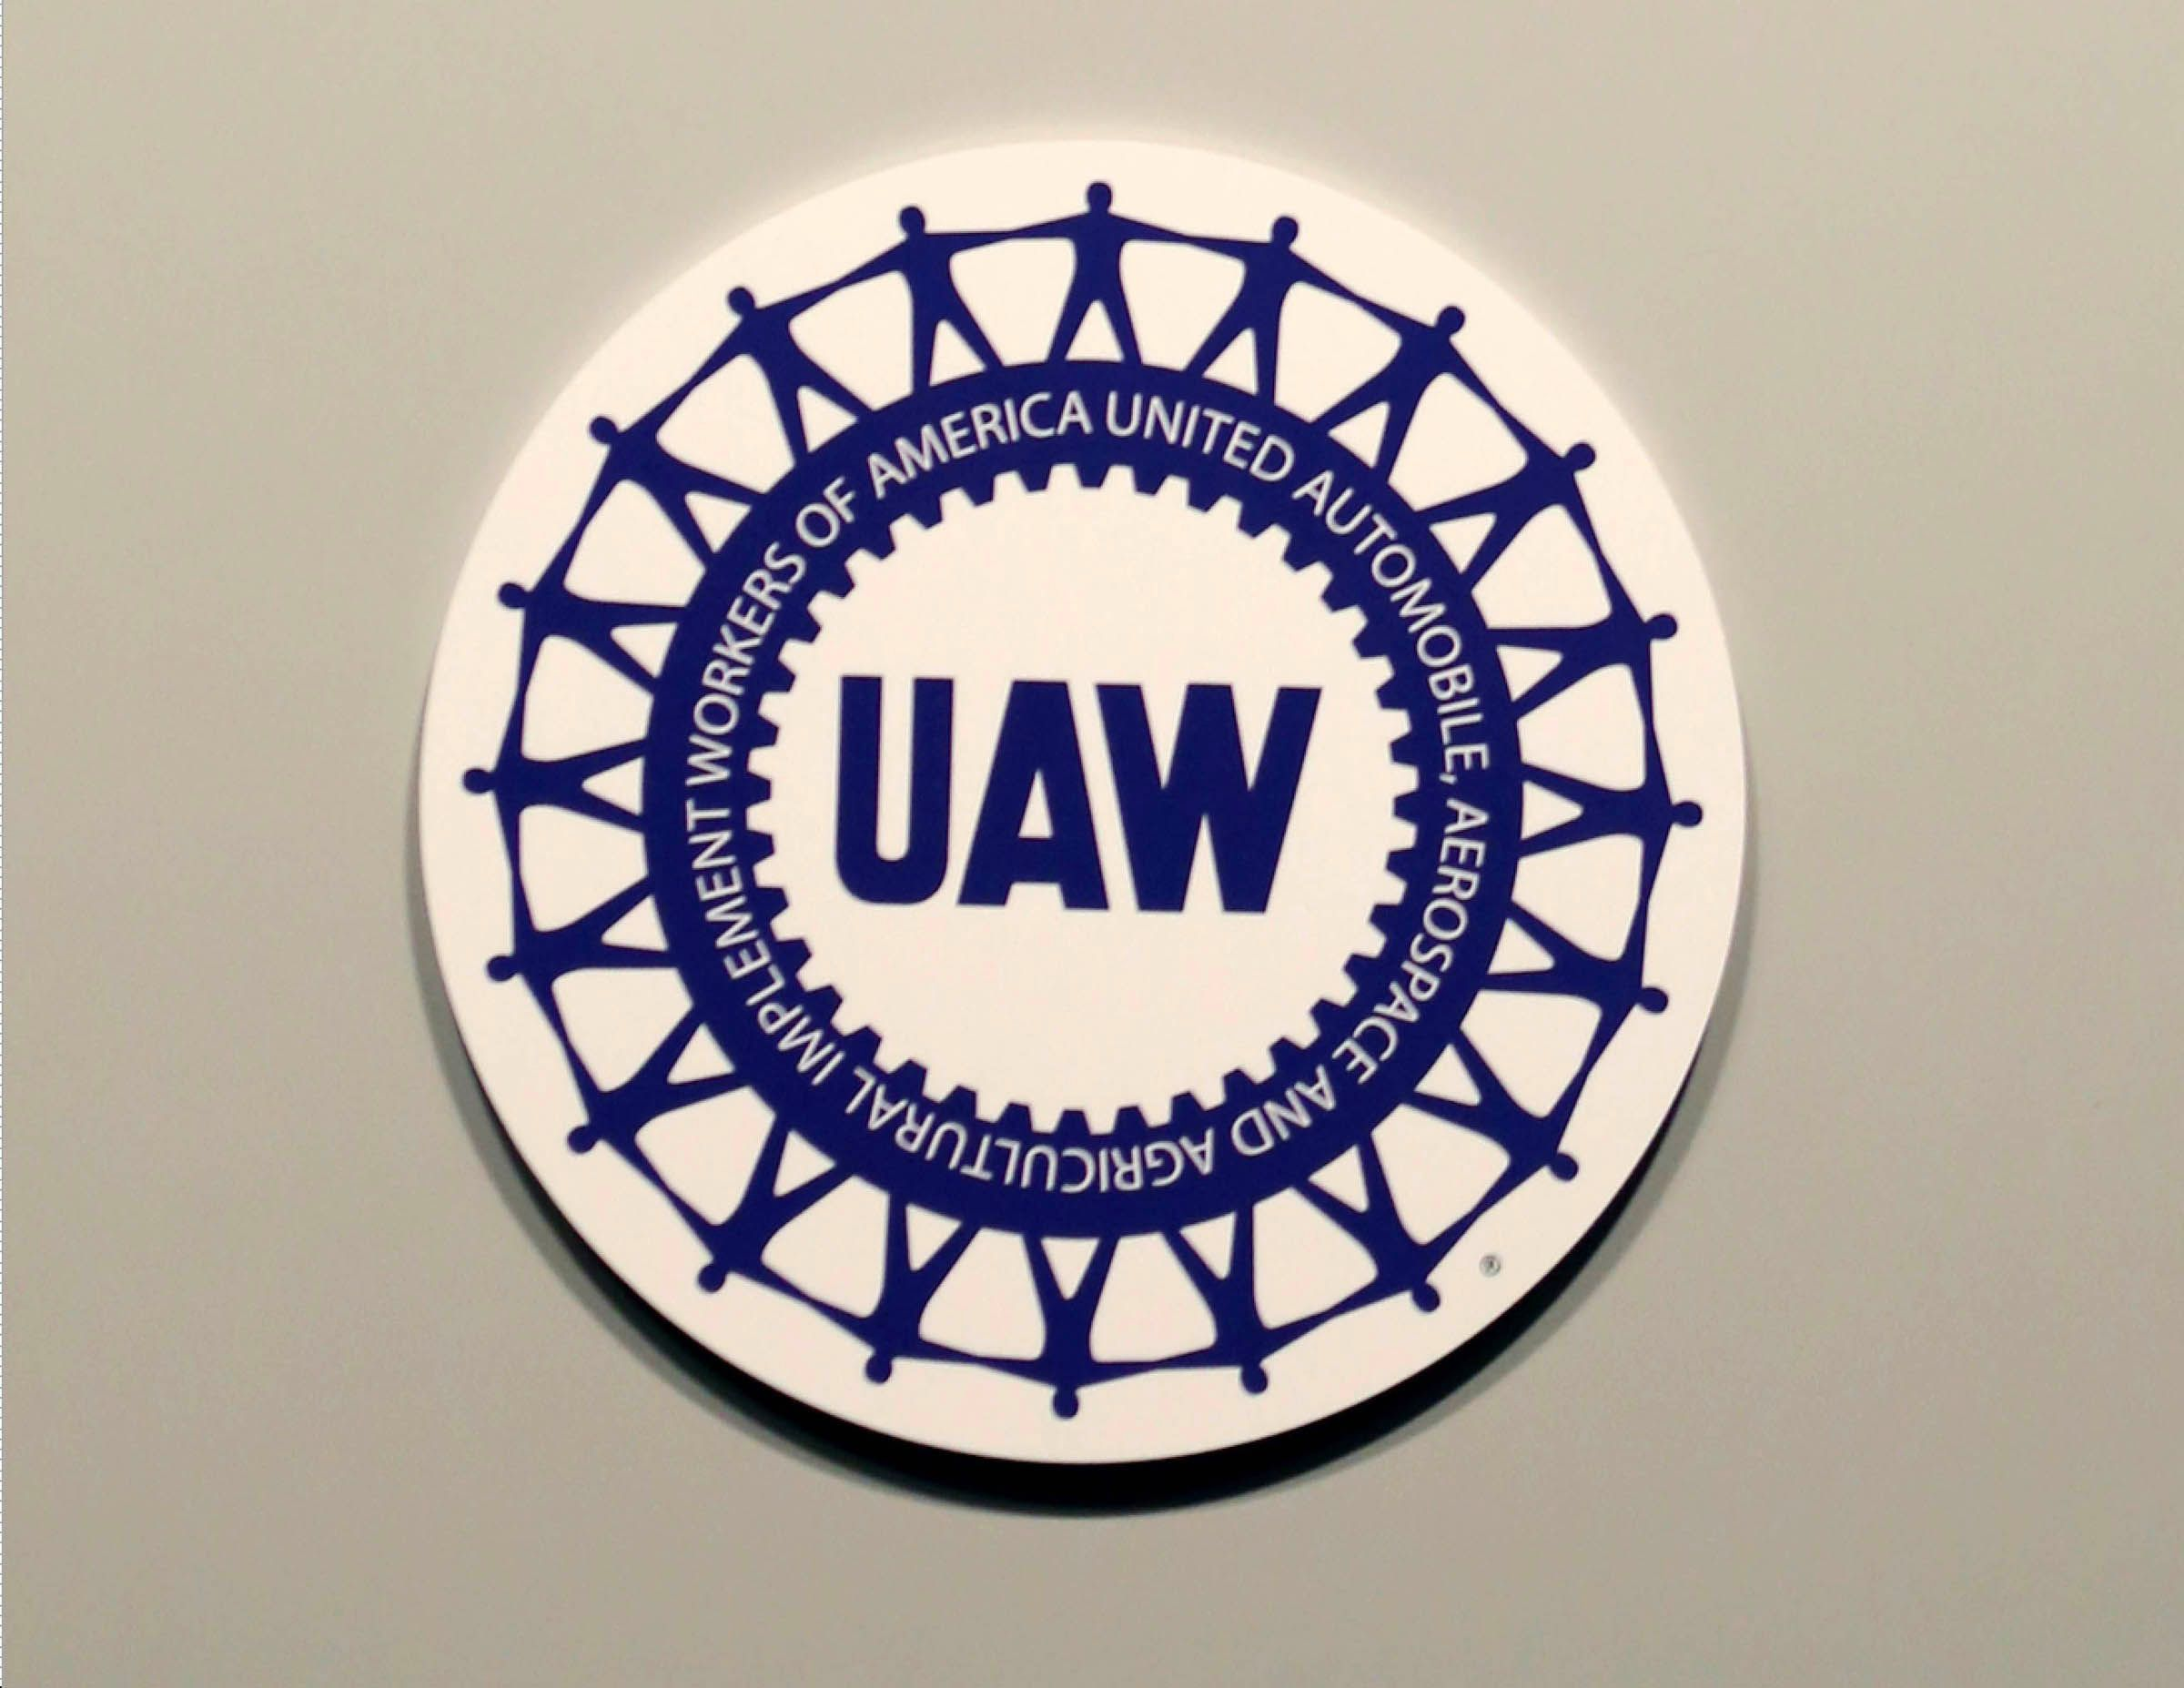 Vance Pearson, a regional UAW director charged in the corruption probe, has been placed on leave.